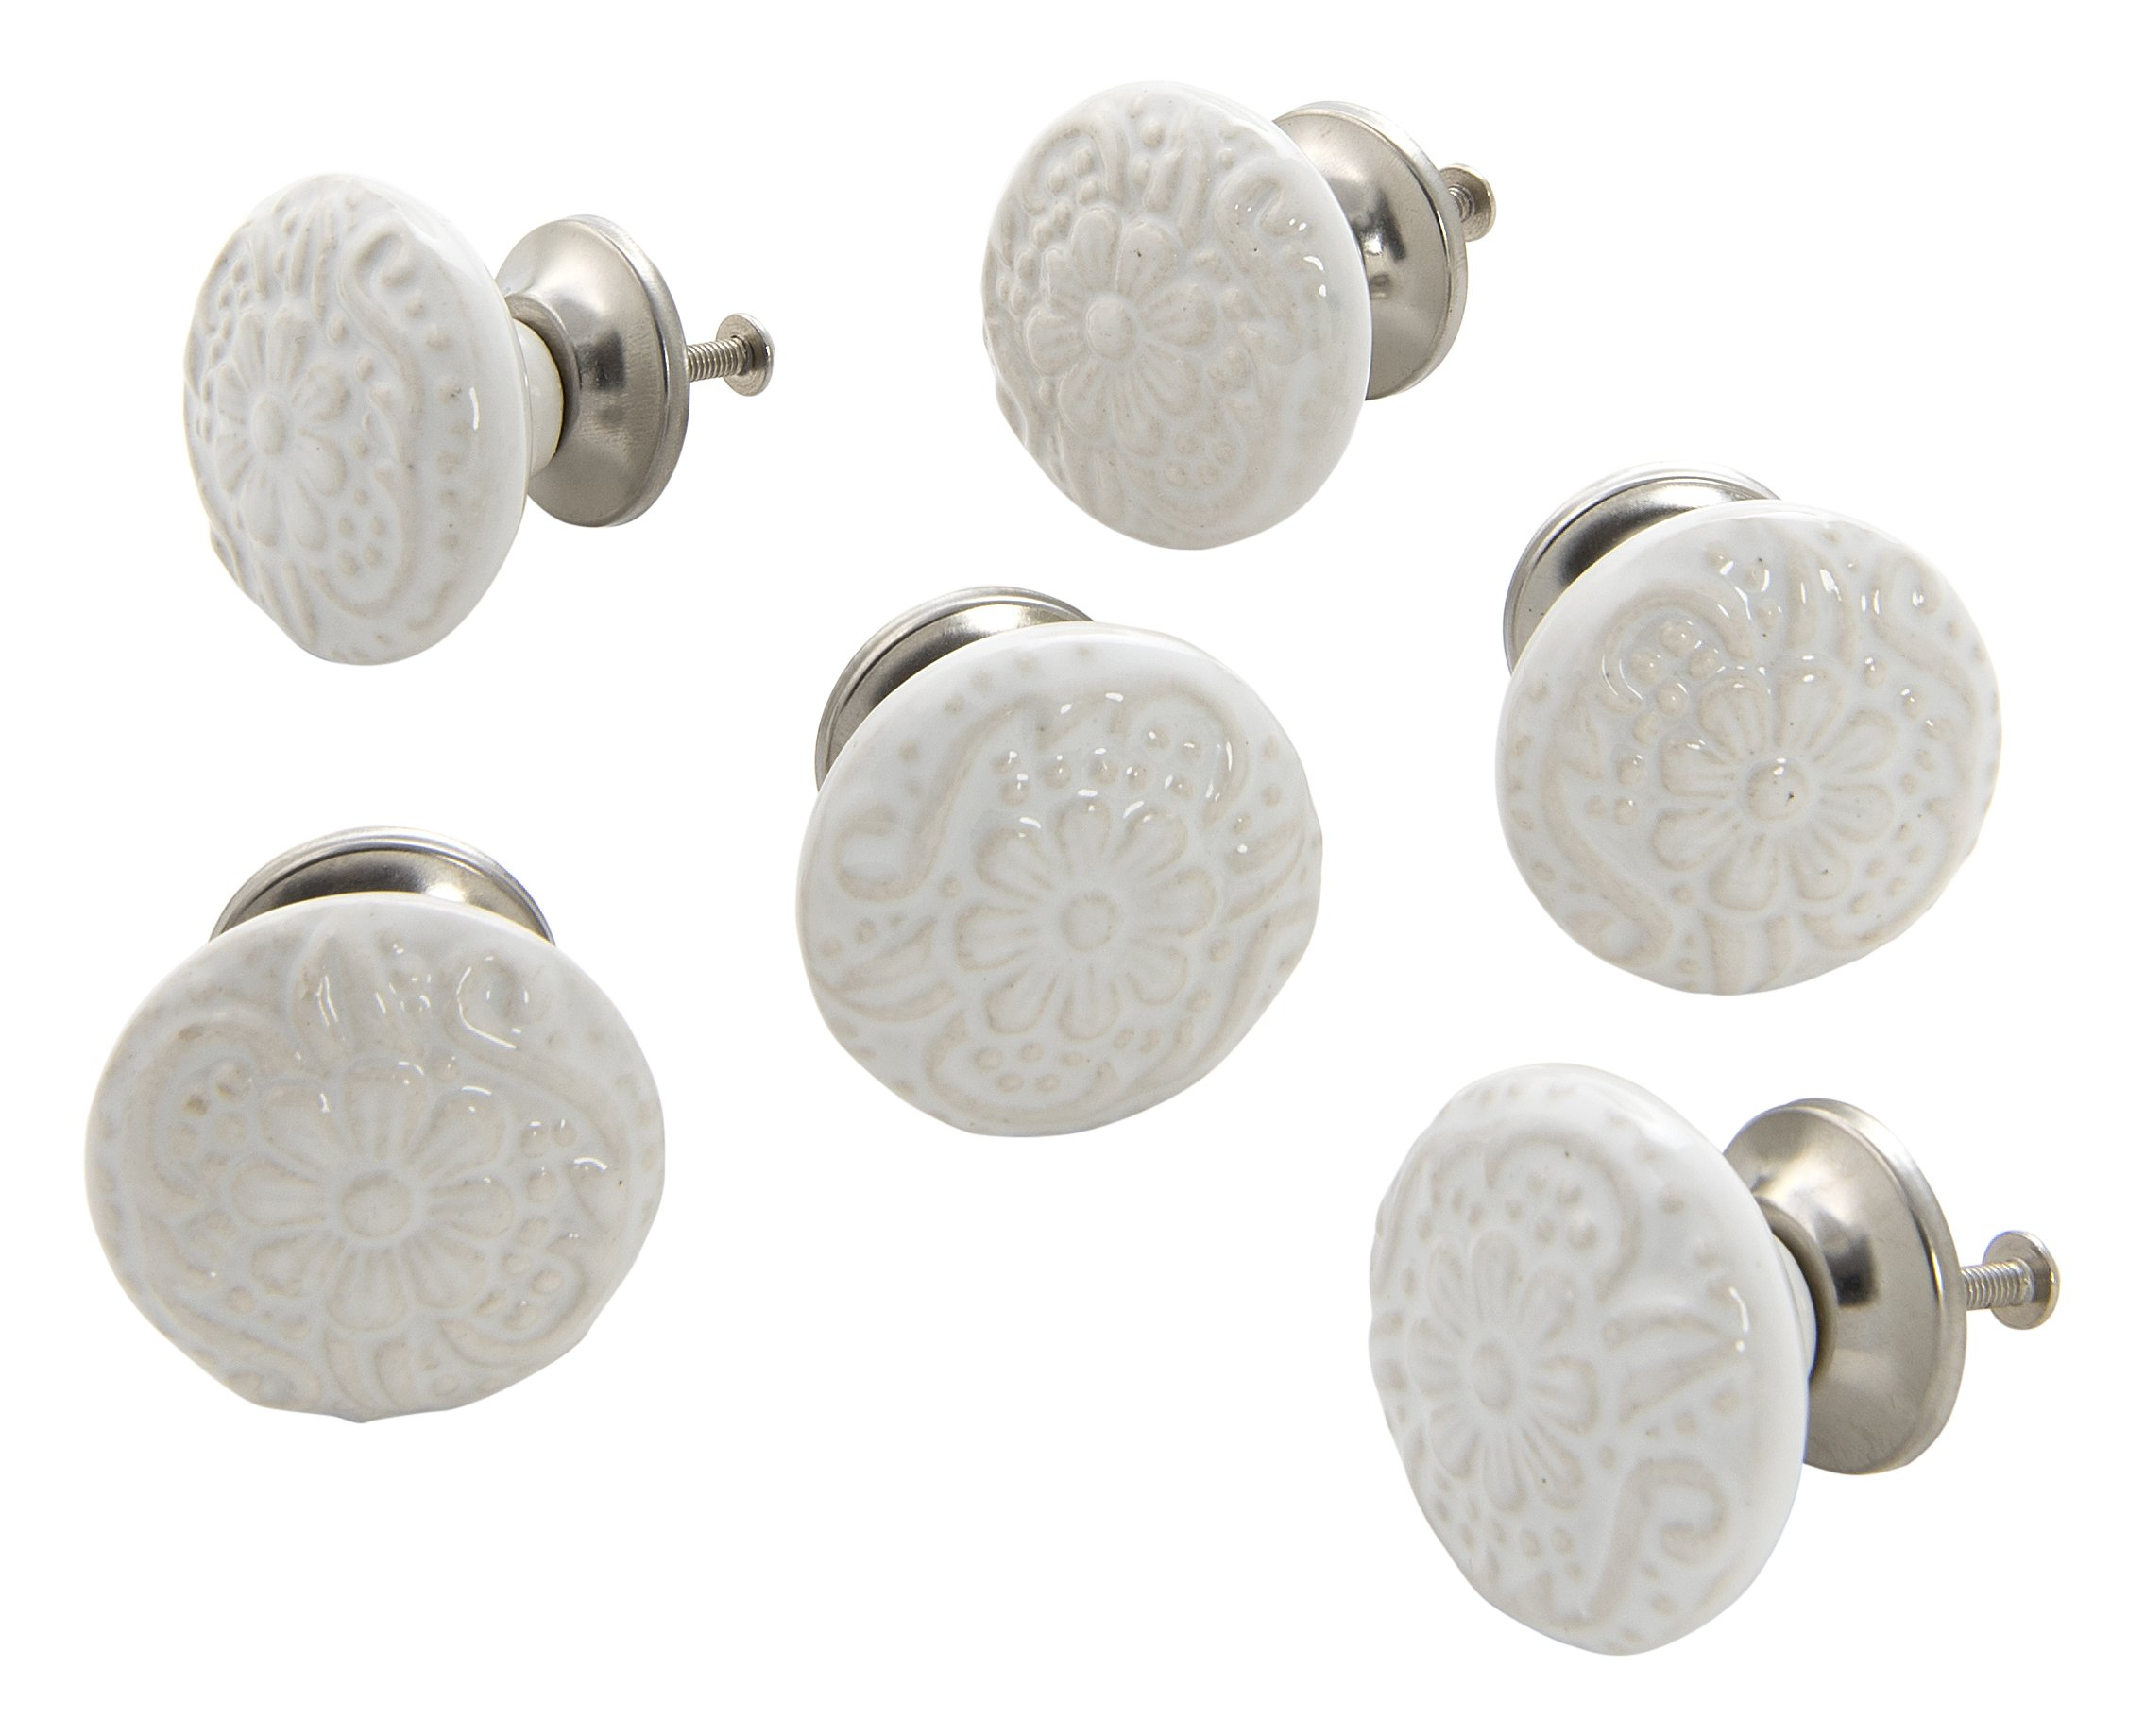 Dritz Home 47026A Ceramic Embossed Flower Knob Handcrafted Knobs for Cabinets & Drawers